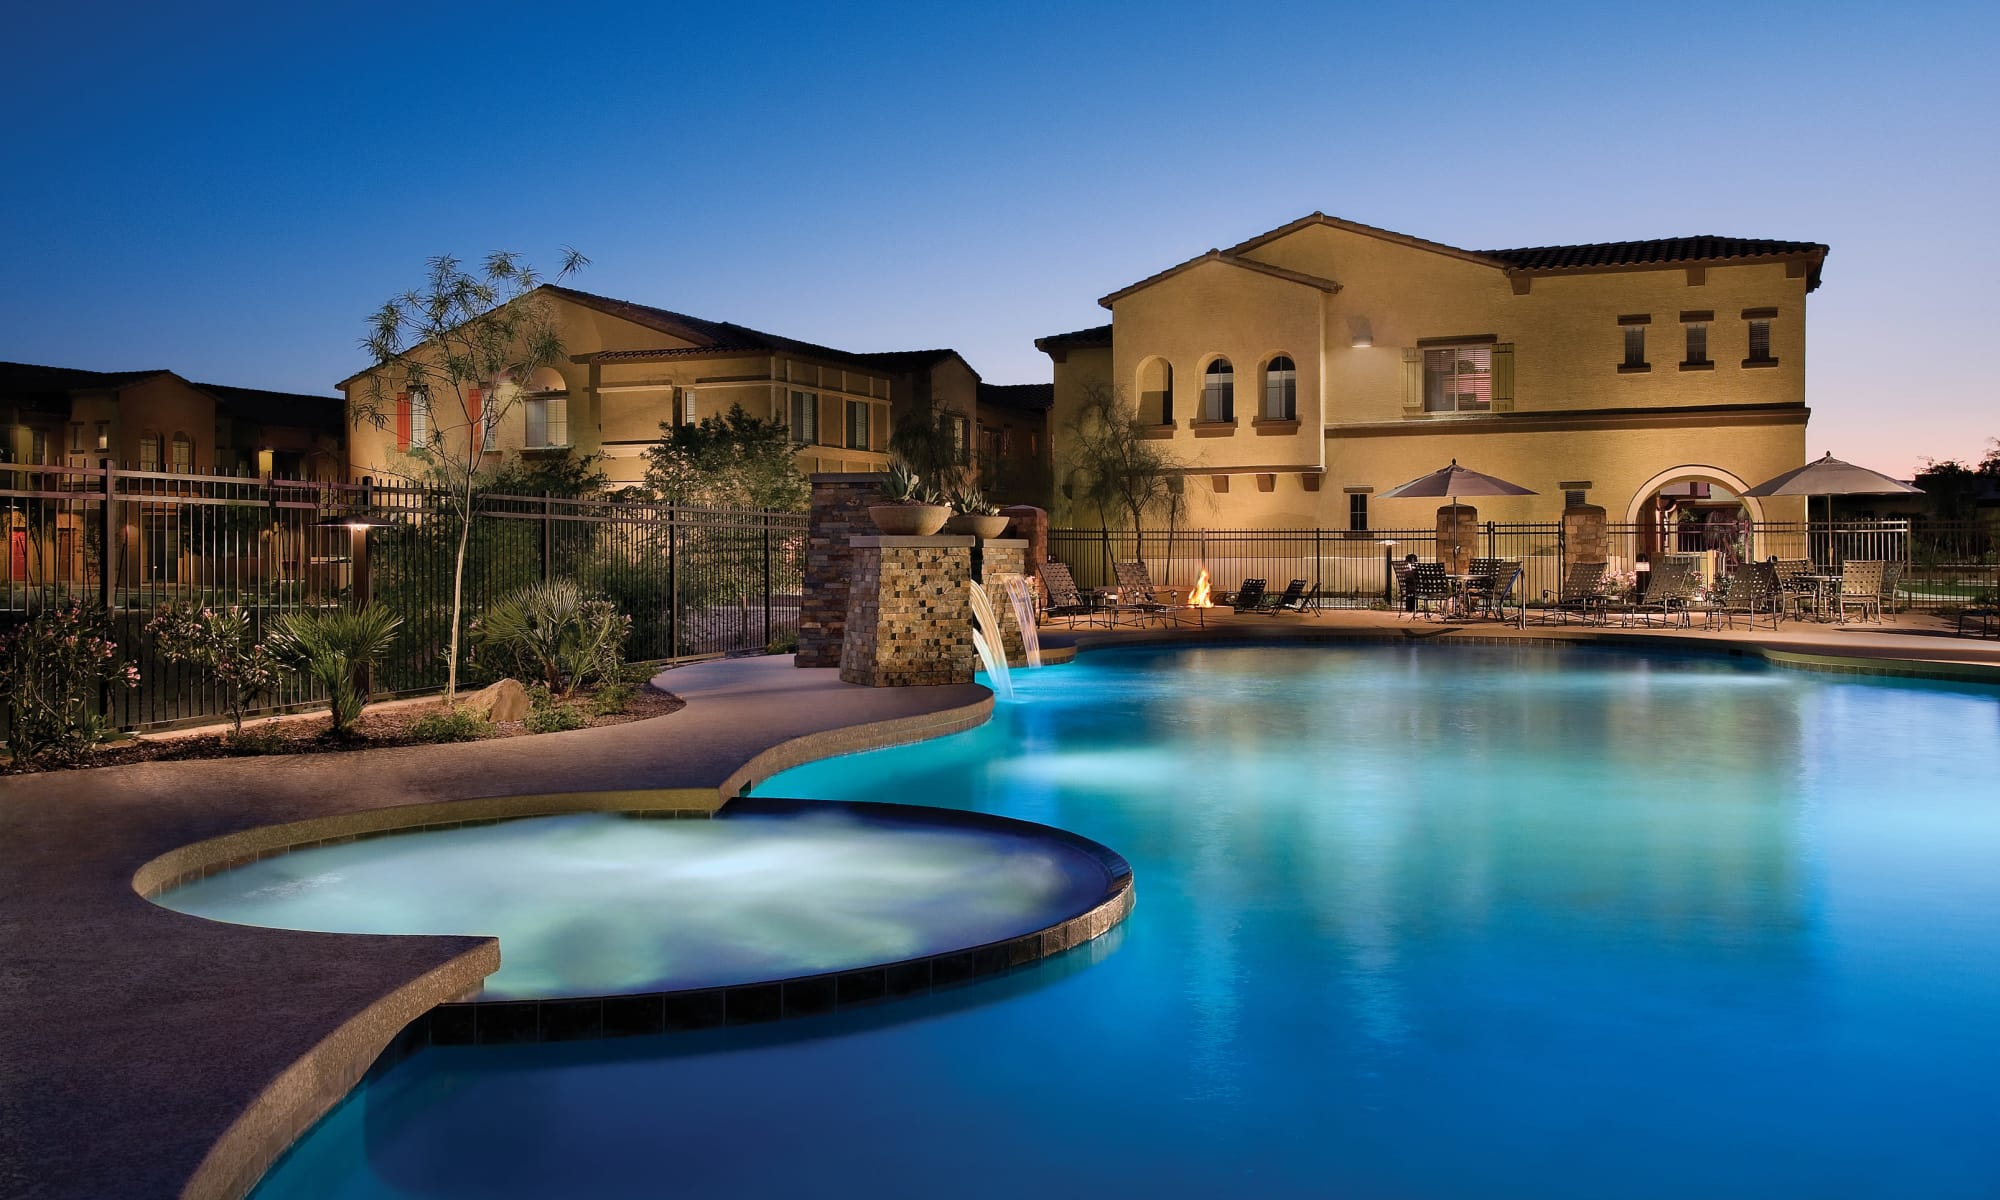 Townhomes at Ravenwood Heights in Tempe, Arizona